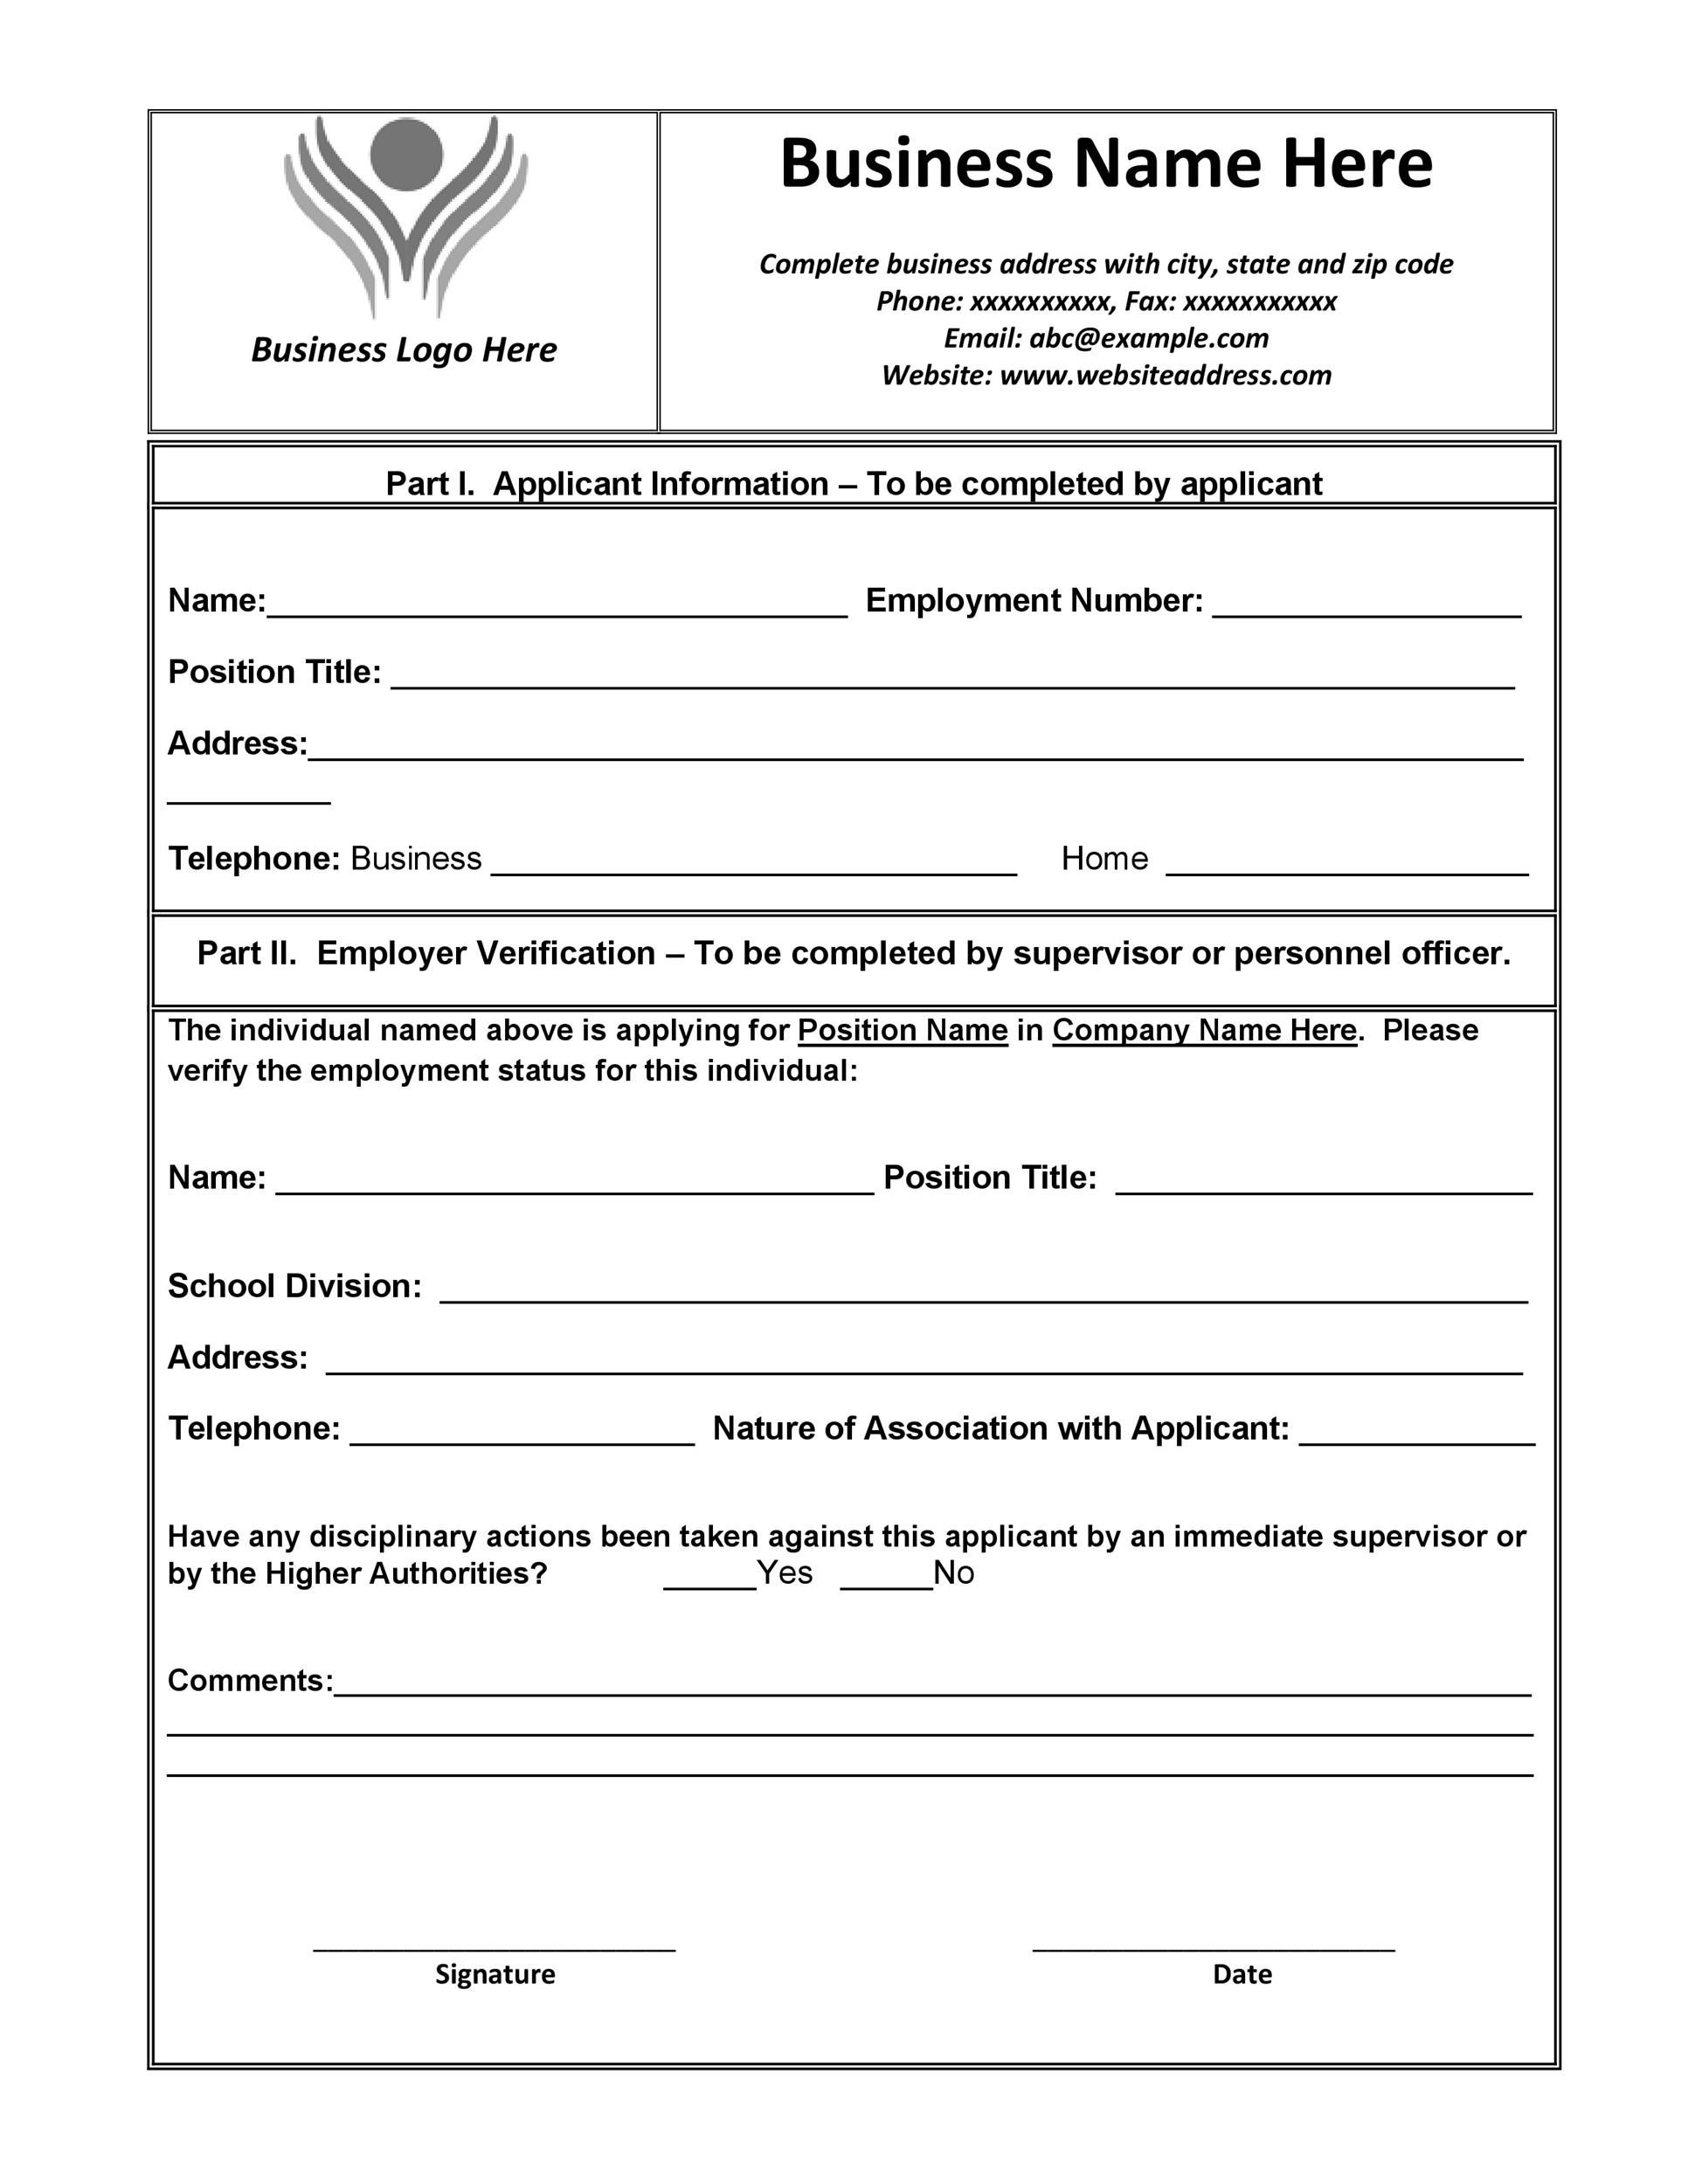 005 Frightening Employment Verification Form Template Image  Templates Previou Past PrintableFull